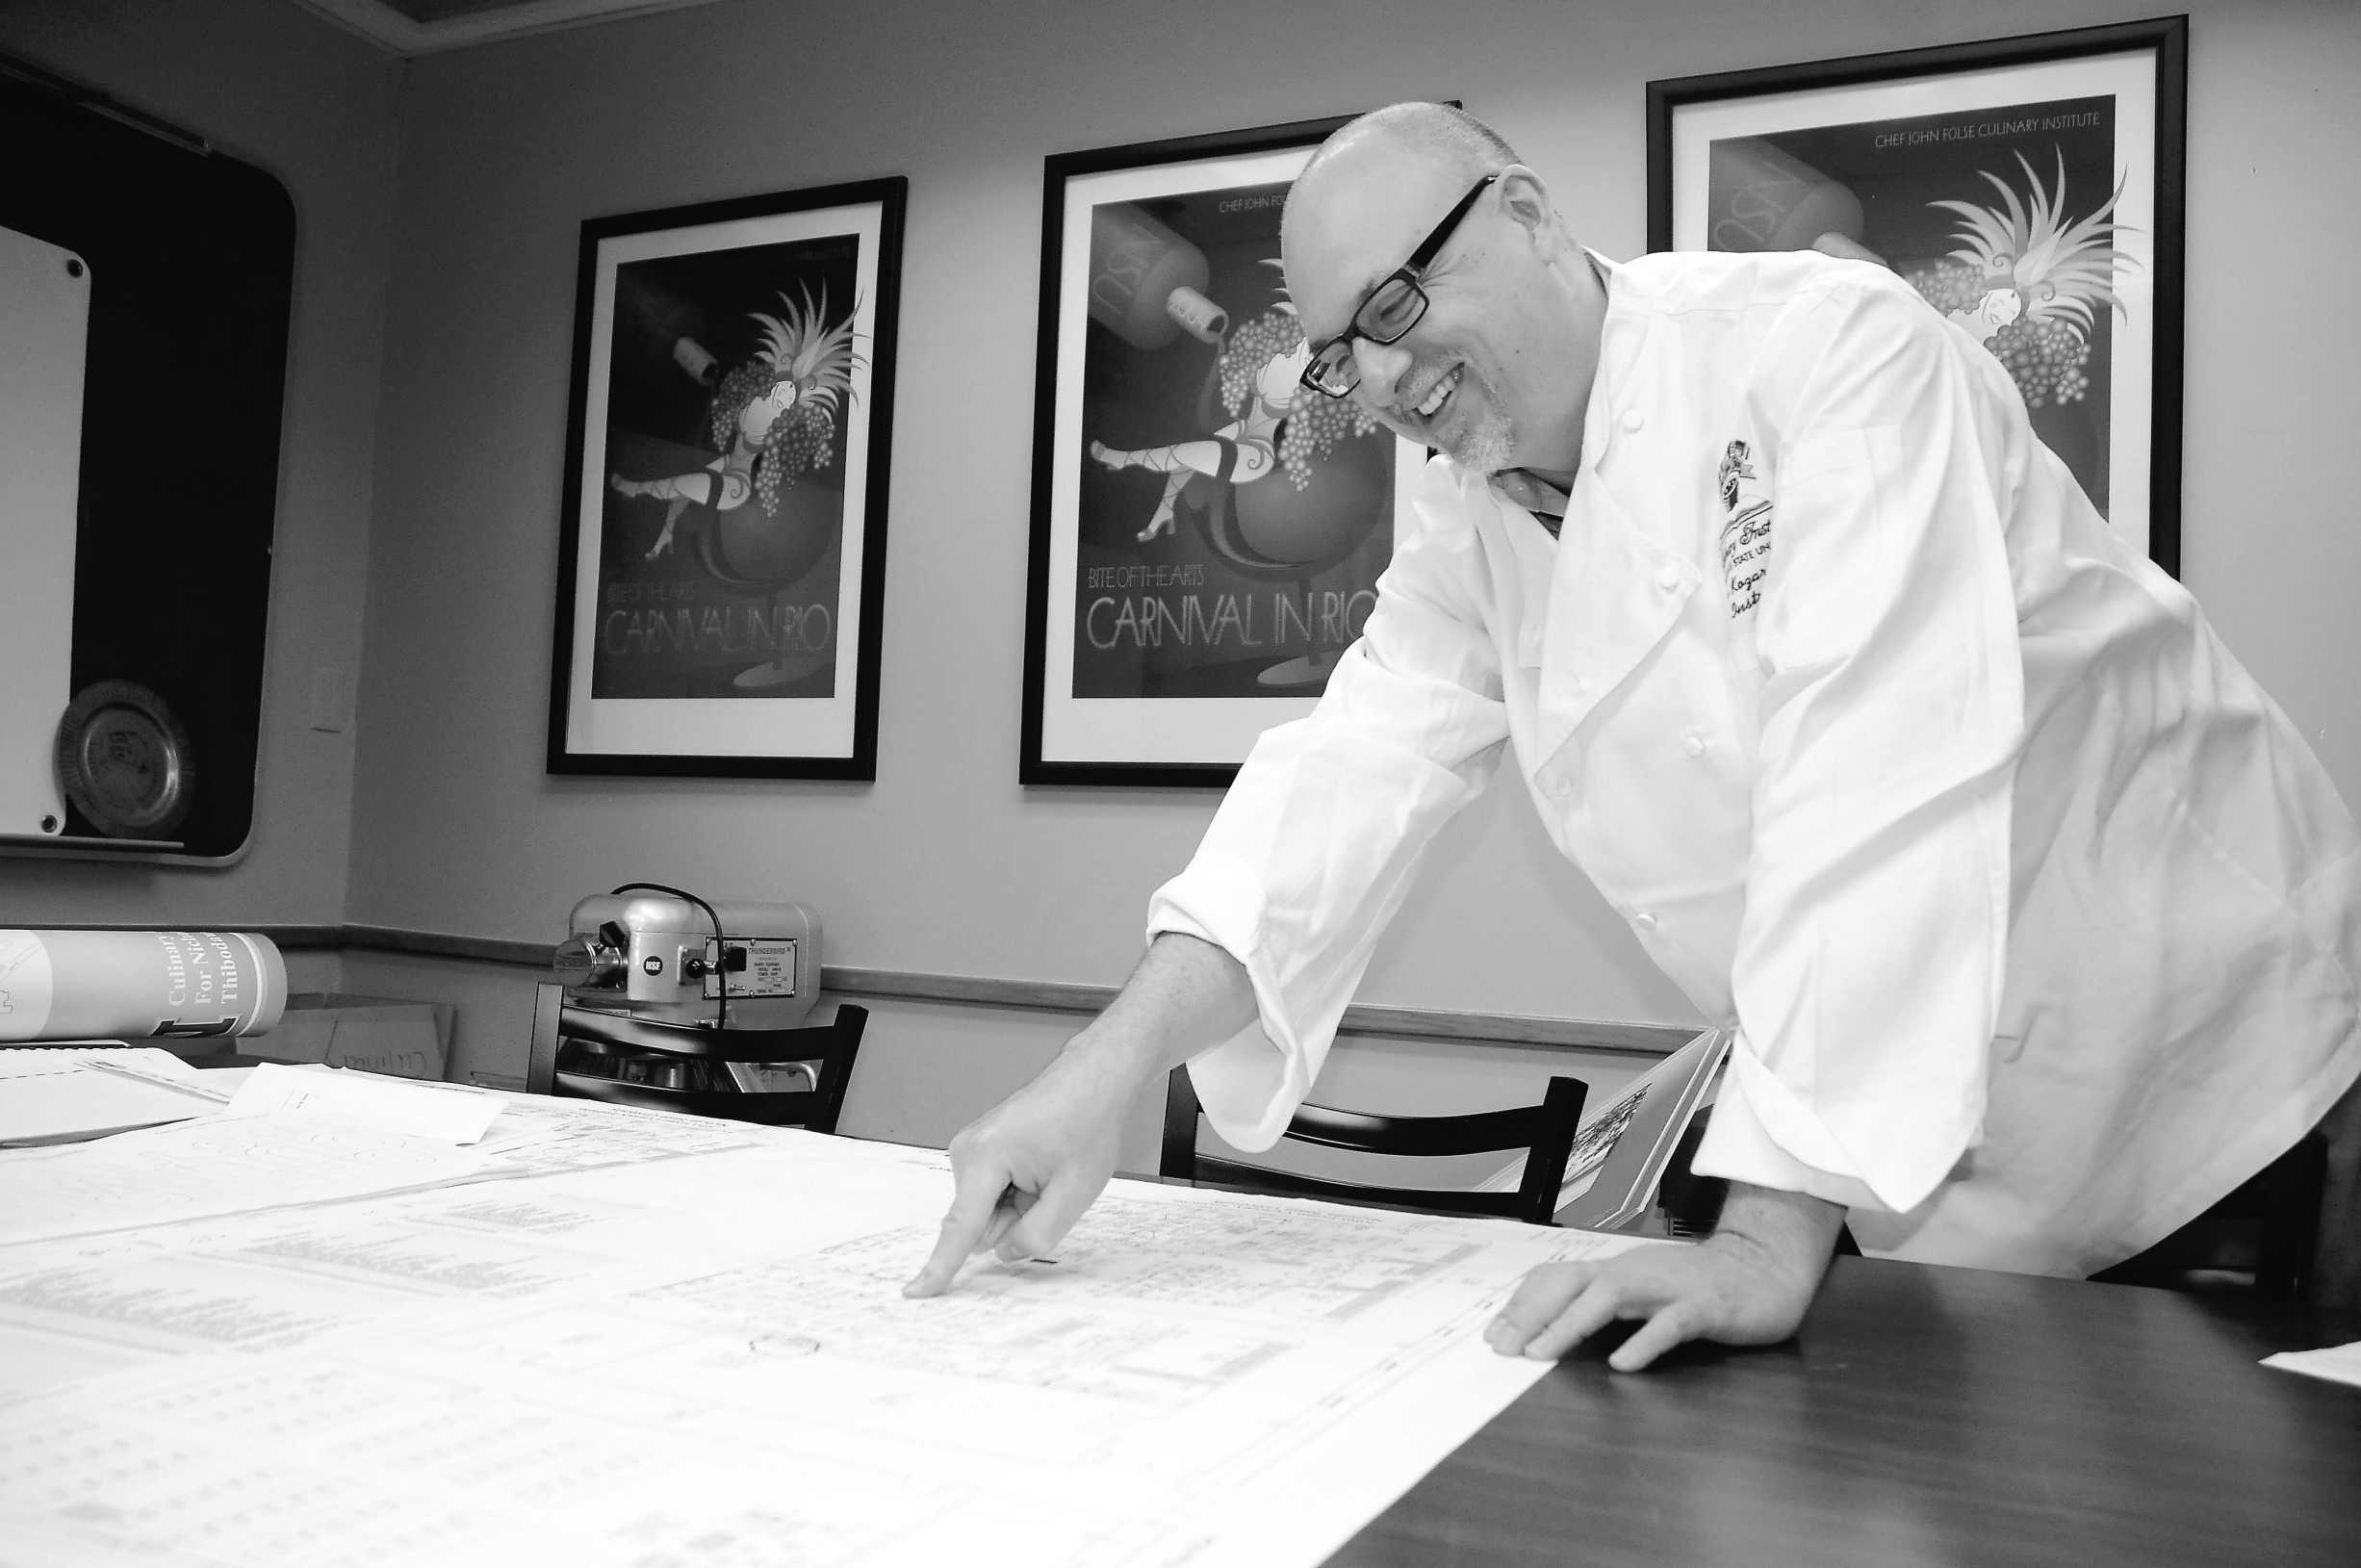 Chef John Kozar, MBOE, department head checks out the official blueprints for the new culinary building on August 17, 2012